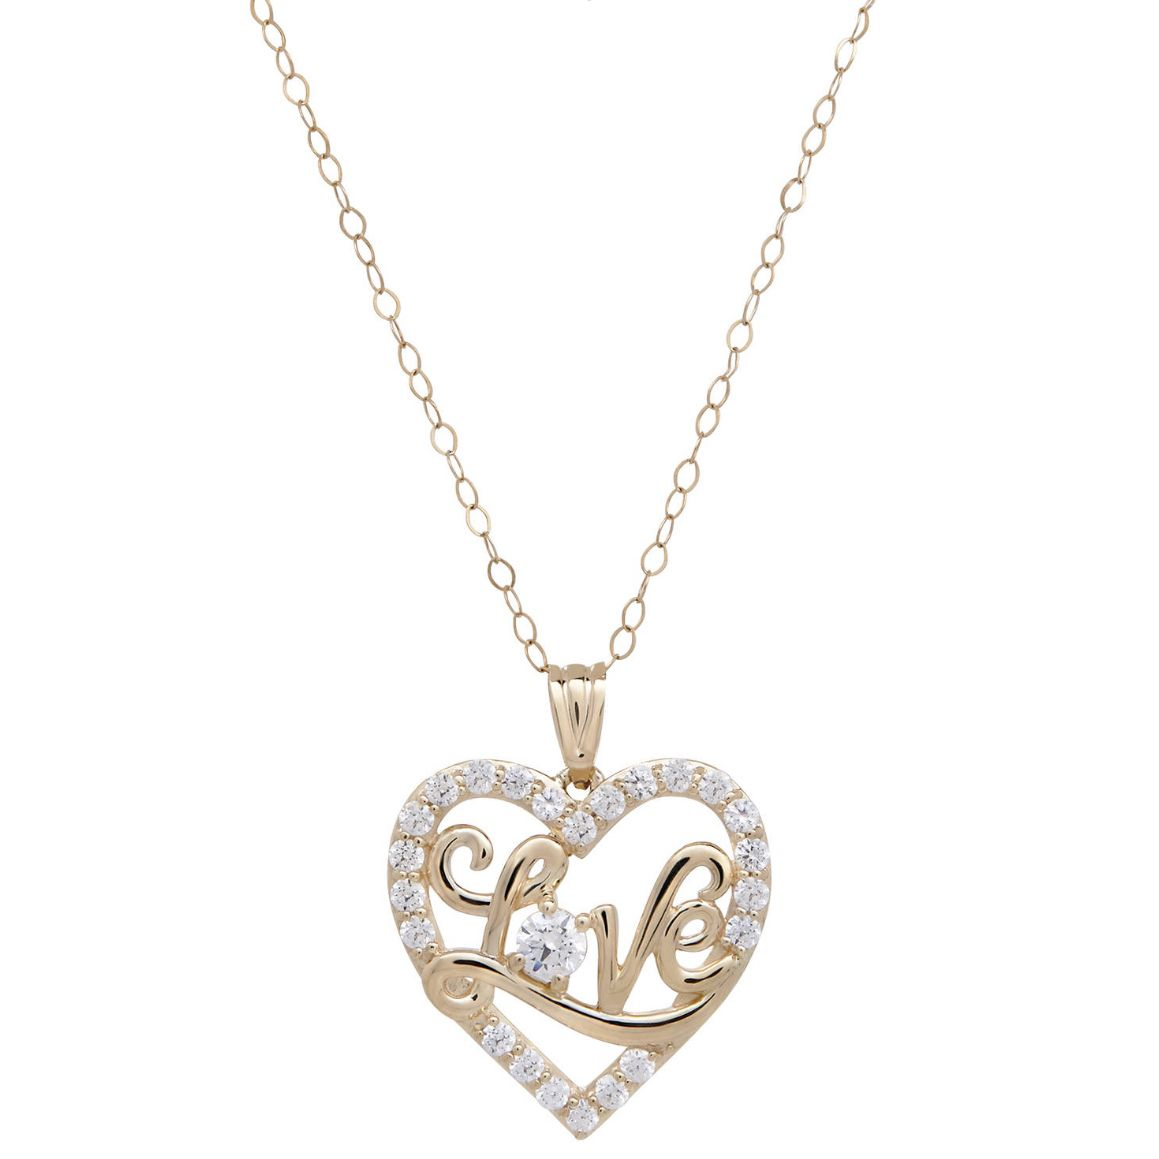 Believe by brilliance cz kt yellow gold love open heart pendant